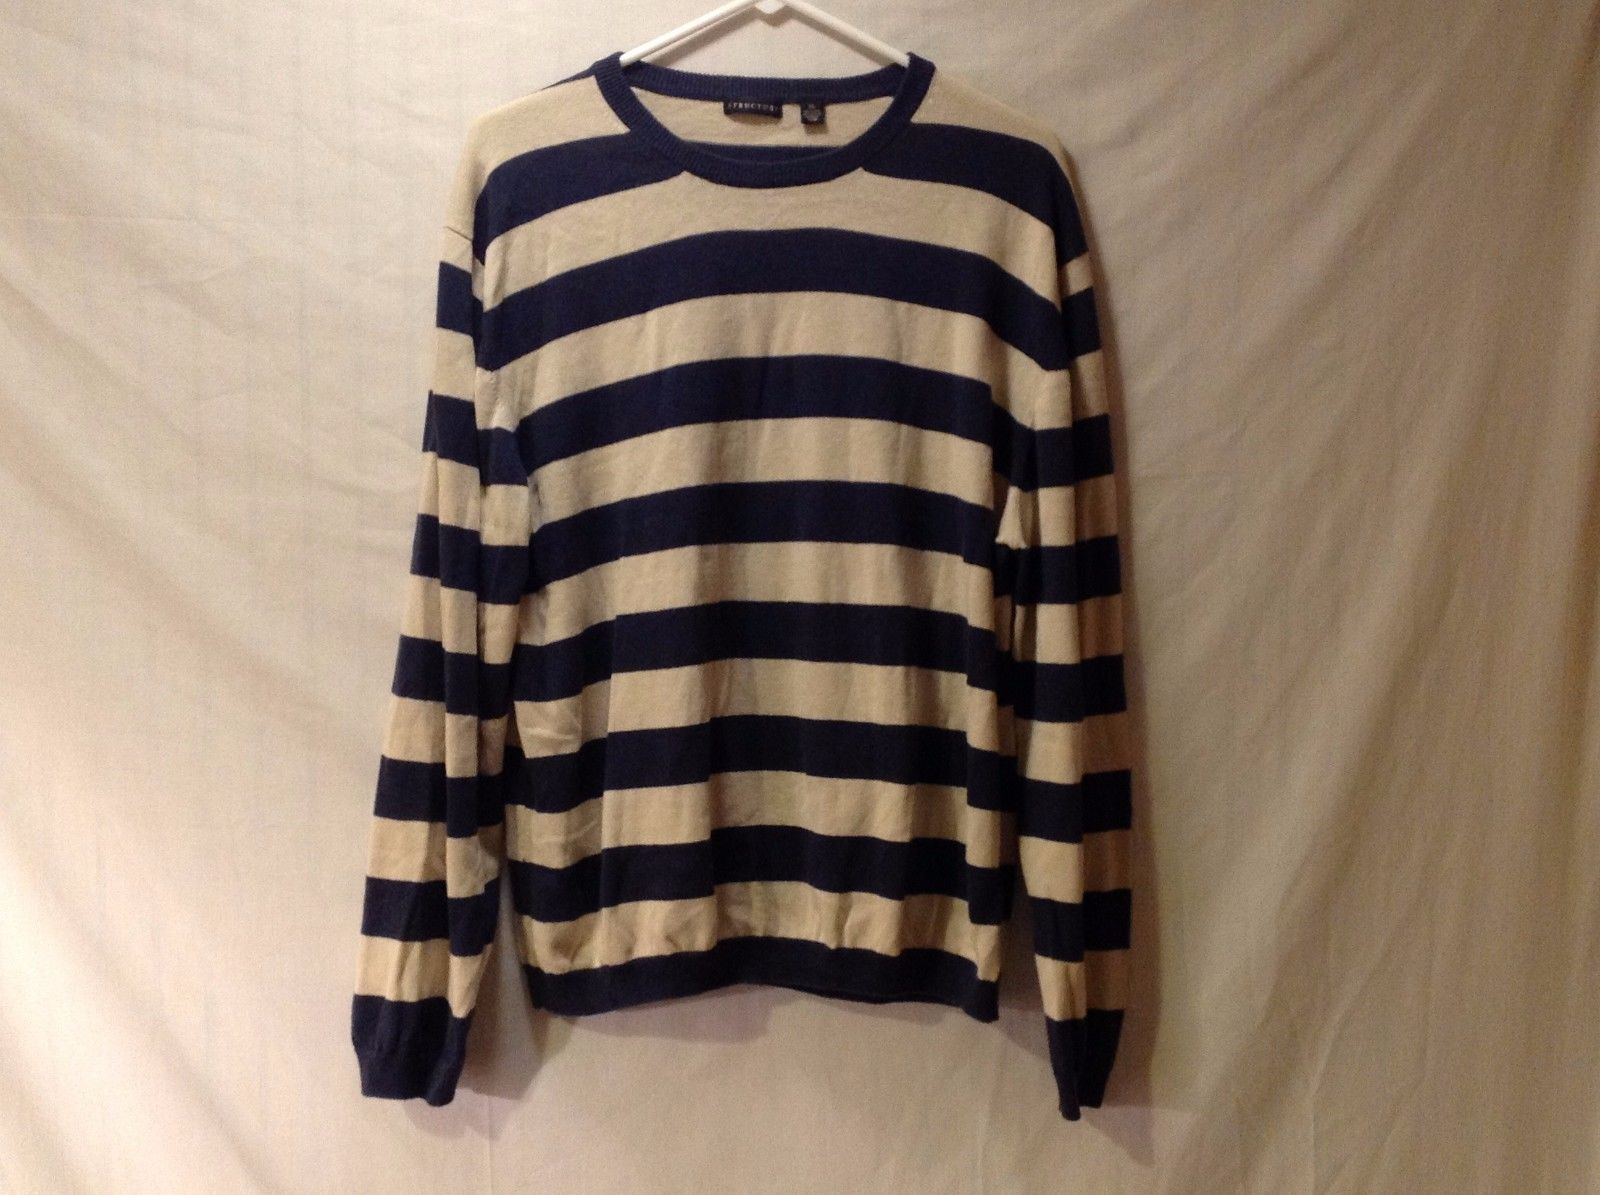 XL Crew Neck Sweater Structure Cream and Navy Horizontal Striped